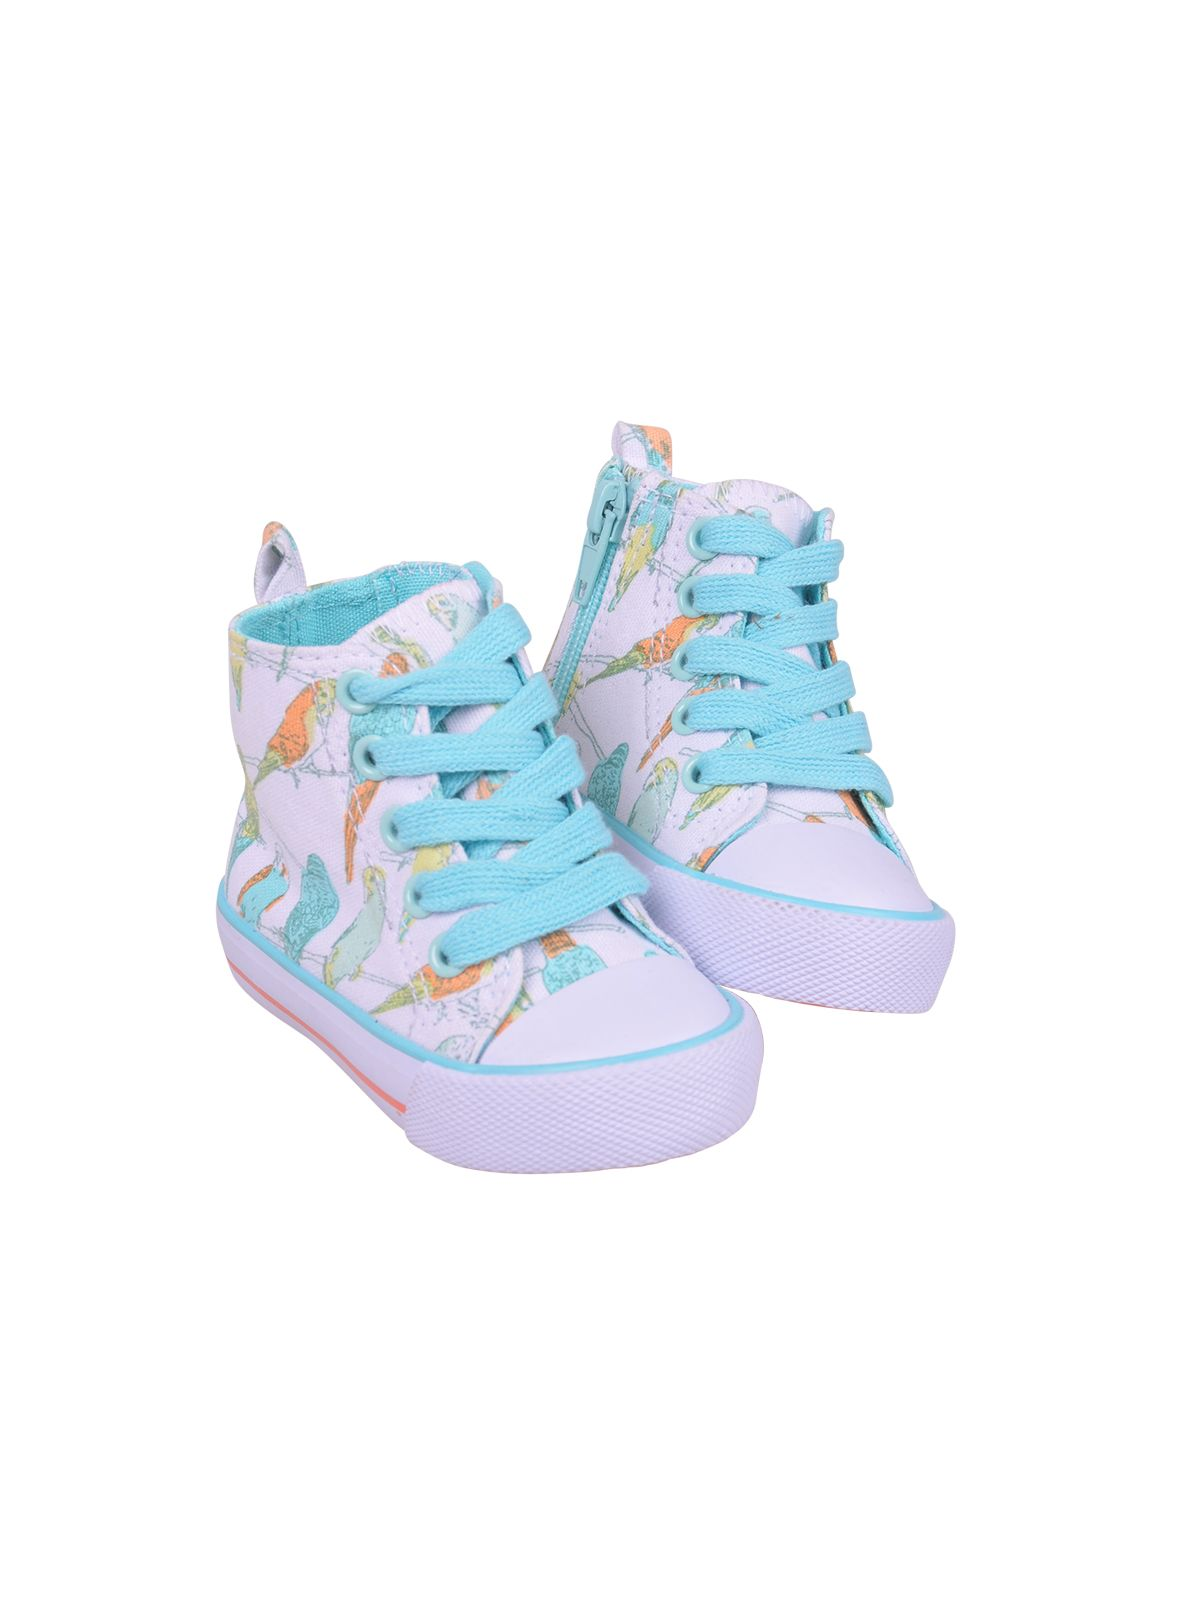 Girls budgie print high top trainers